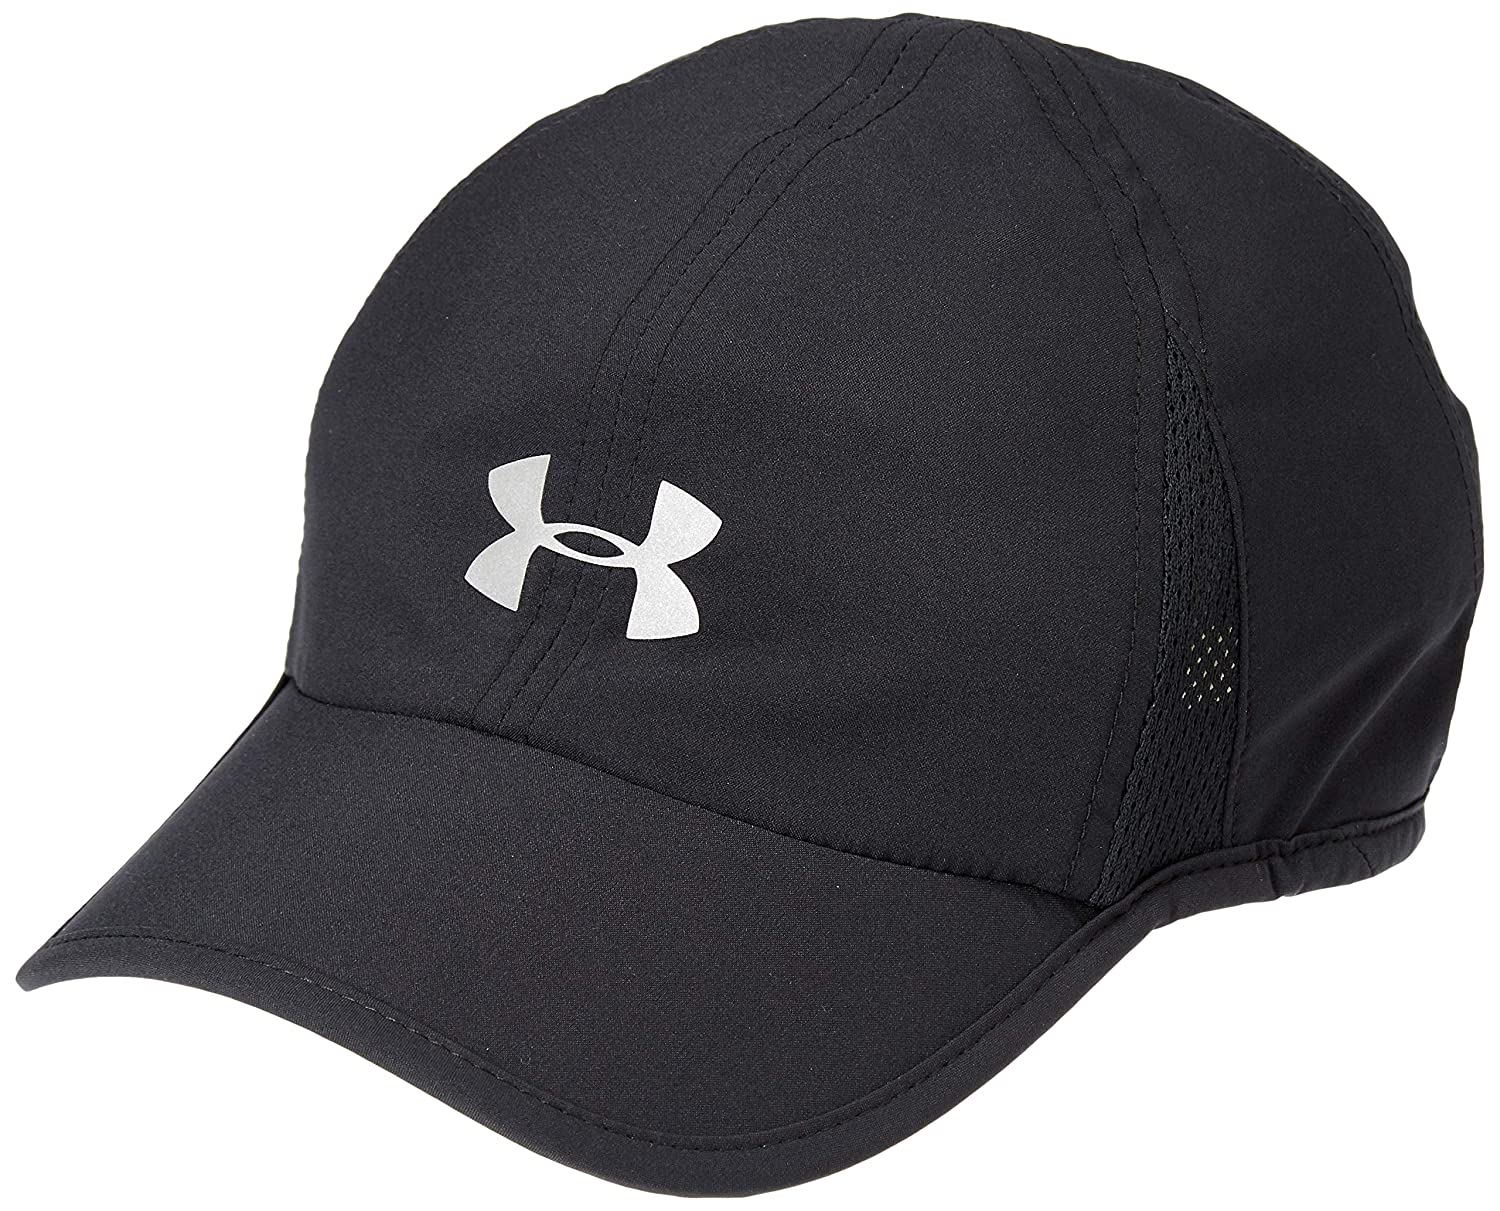 promo code 5333f c267e Amazon.com  Under Armour Womens Shadow 2.0 Cap, Black  Silver, One Size   Clothing